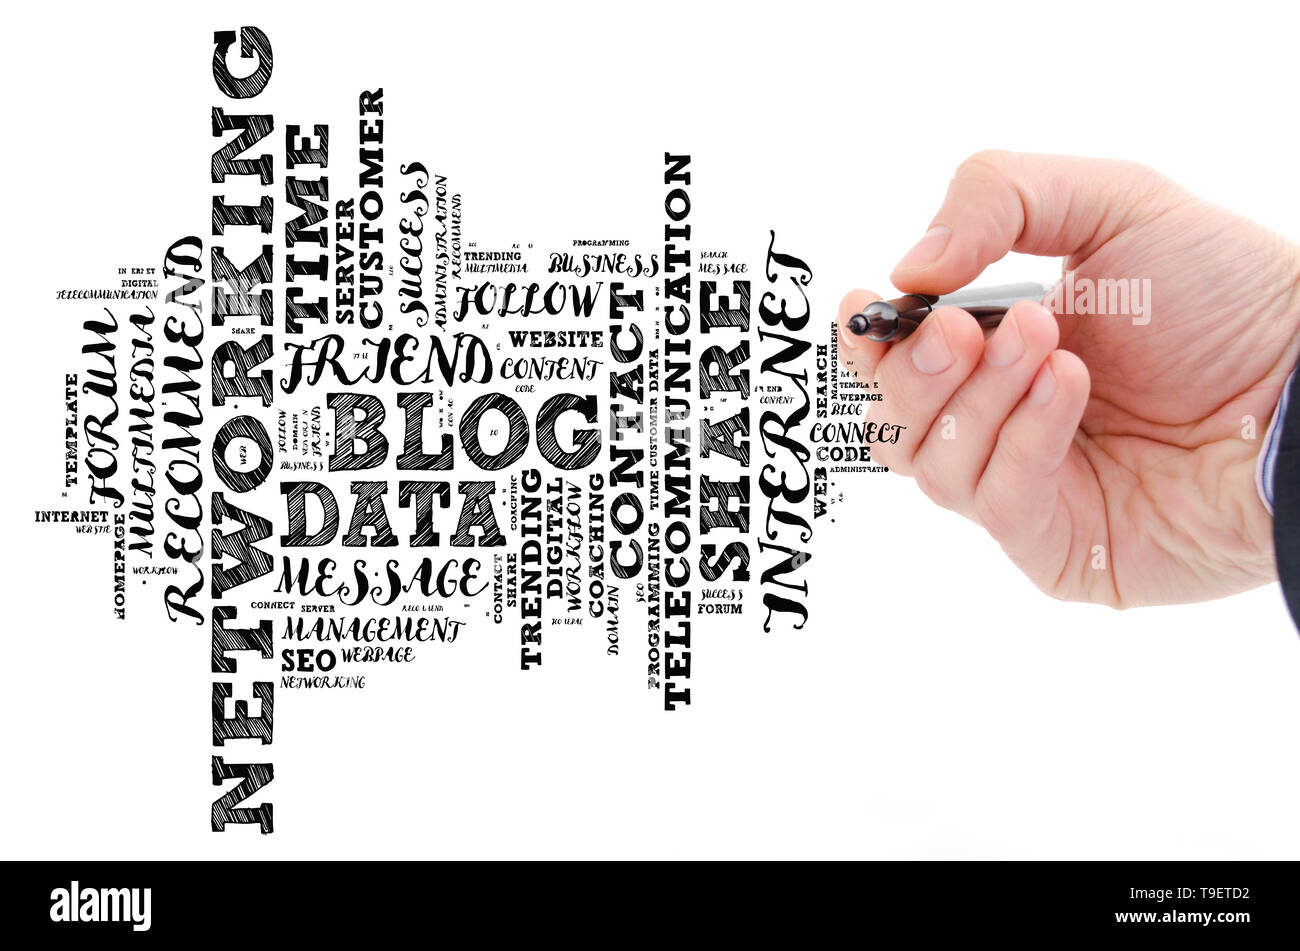 Blog word cloud collage over white background Stock Photo